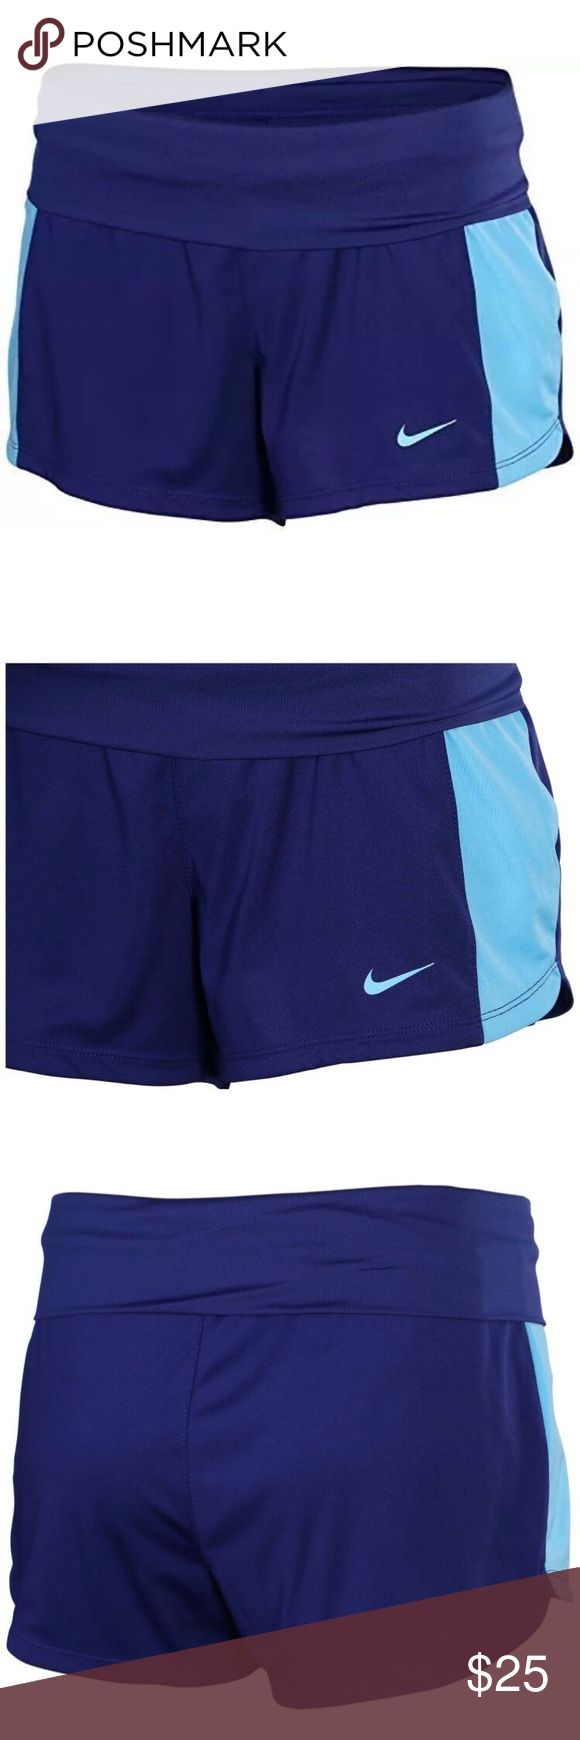 Nike Women's Dri-Fit Knit Training Shorts-Blue The Nike Knit Women's Training Shorts feature a wide, foldover waistband and stretchy, sweat-wicking fabric for support and comfort during a workout. Dri-FIT fabric to wick sweat away and help keep you dry and comfortable Wide, fold-over waistband with interior drawcord for support and personalized comfort Side insets for range of motion Interior mesh pocket ventilated, for small-item storage Nike swoosh logo on left hip Fabric: 100% polyester…